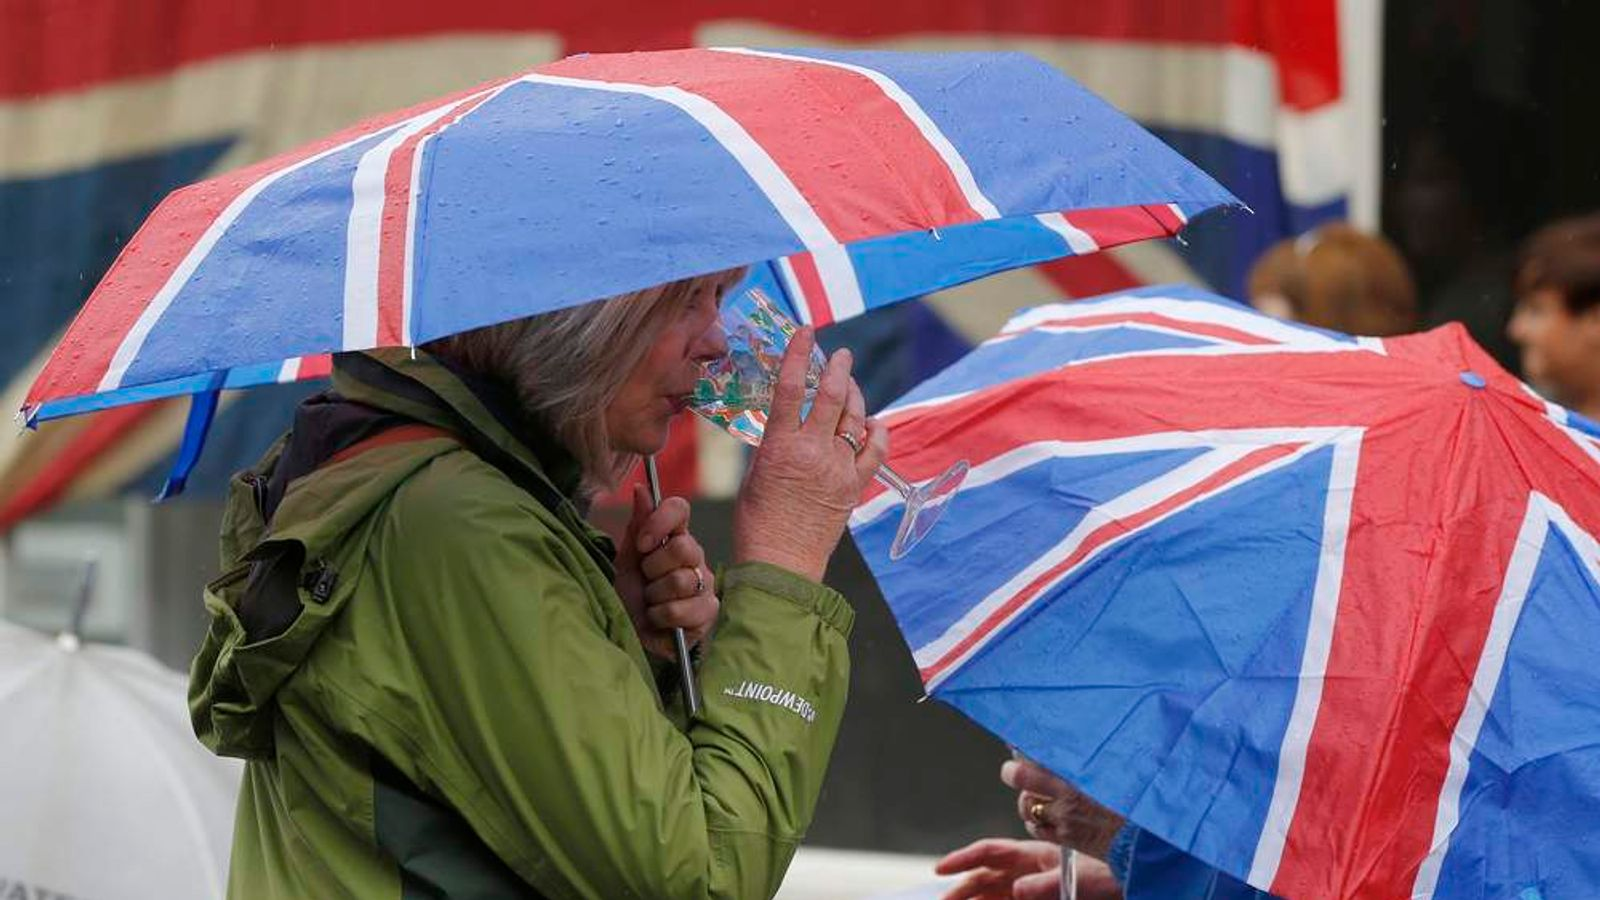 Union Flag umbrellas